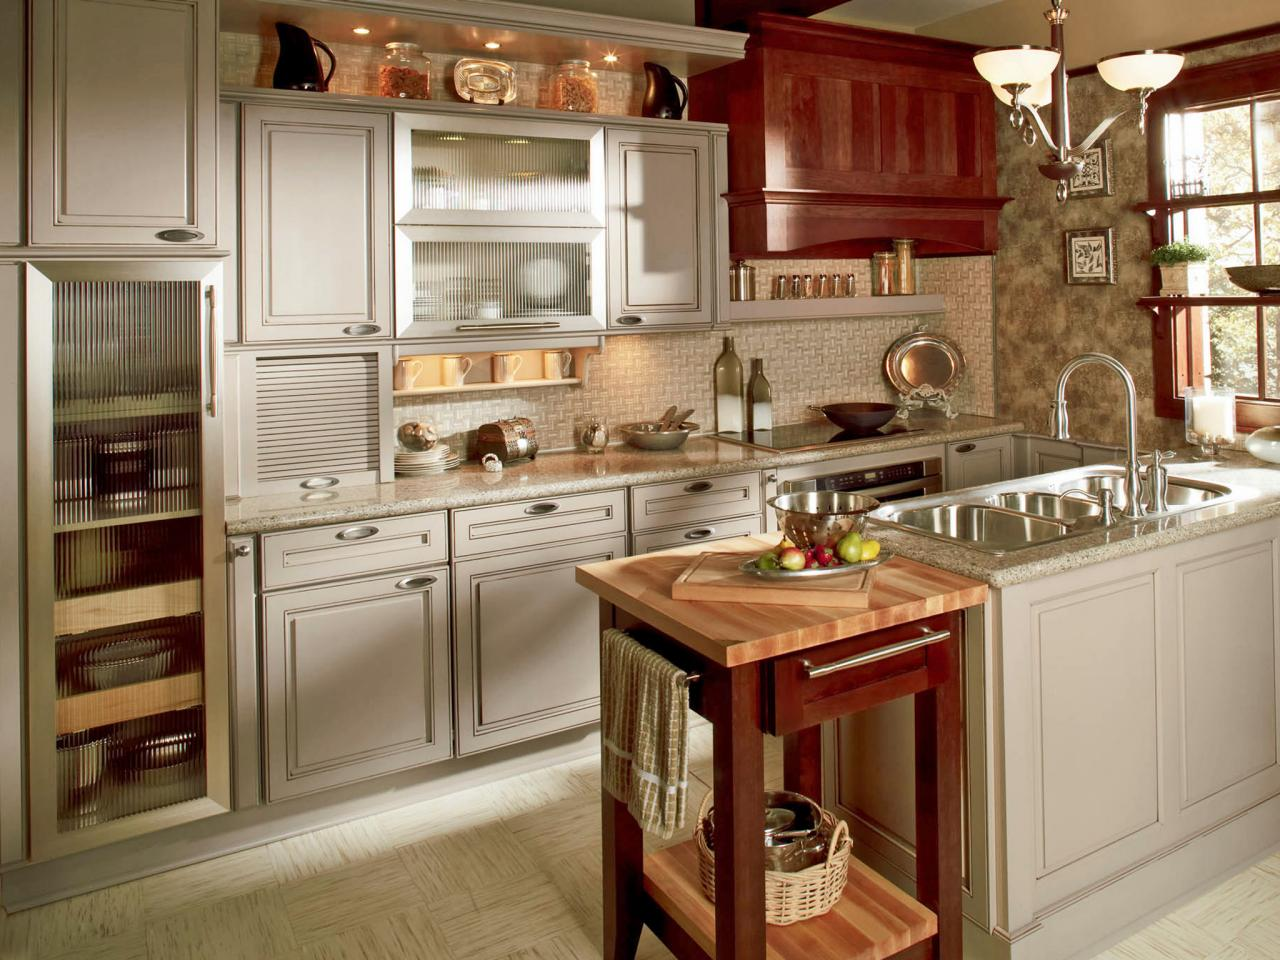 Best Kitchen Cabinets Pictures Ideas Tips From HGTV Kitchen 1280x960